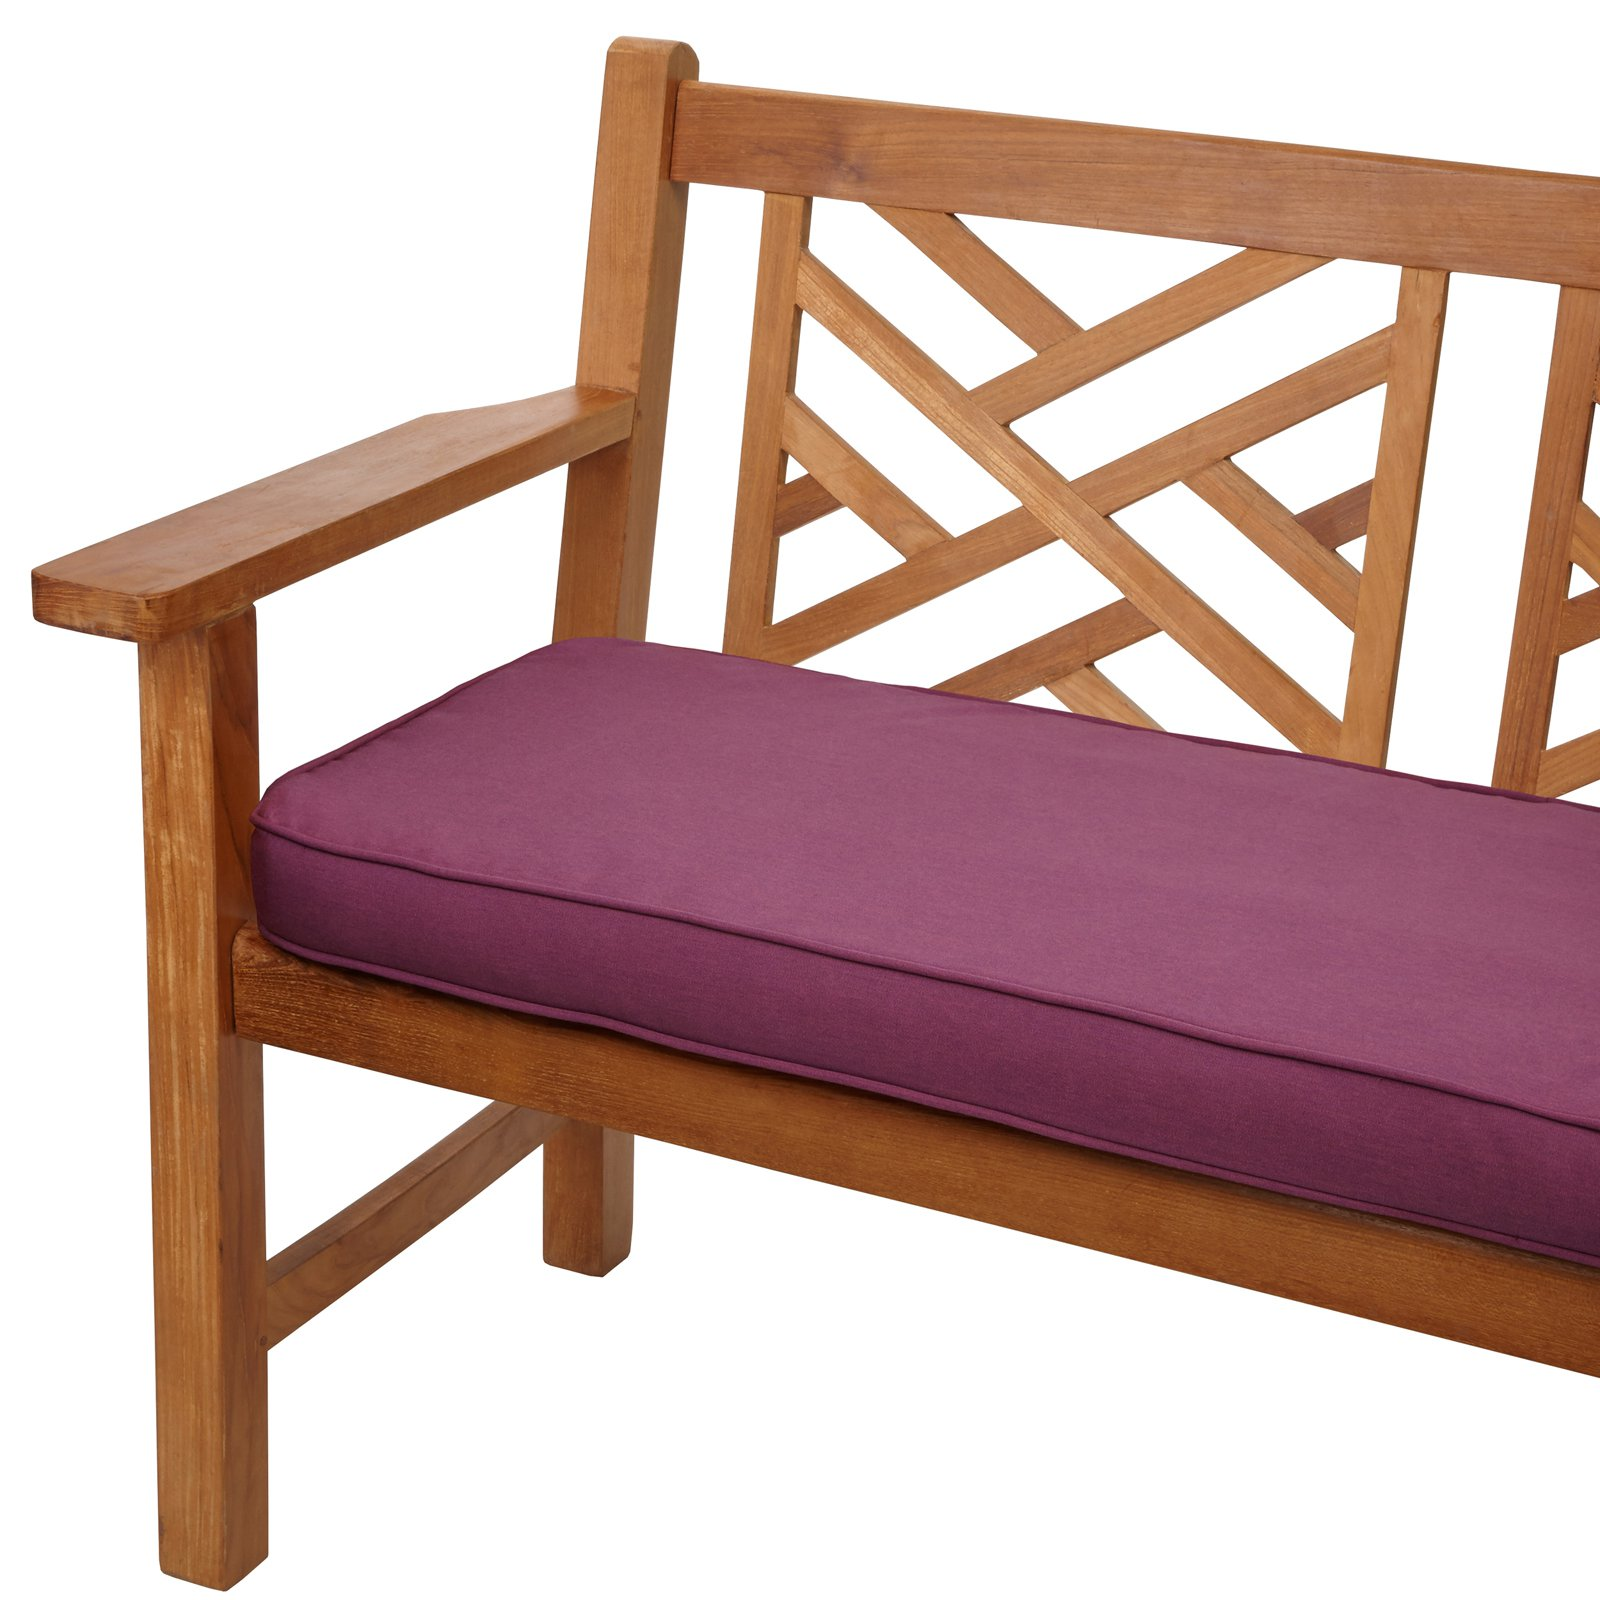 Mozaic Company Sunbrella Corded Indoor/Outdoor Bench Cushion - 4 or 5 ft. Option